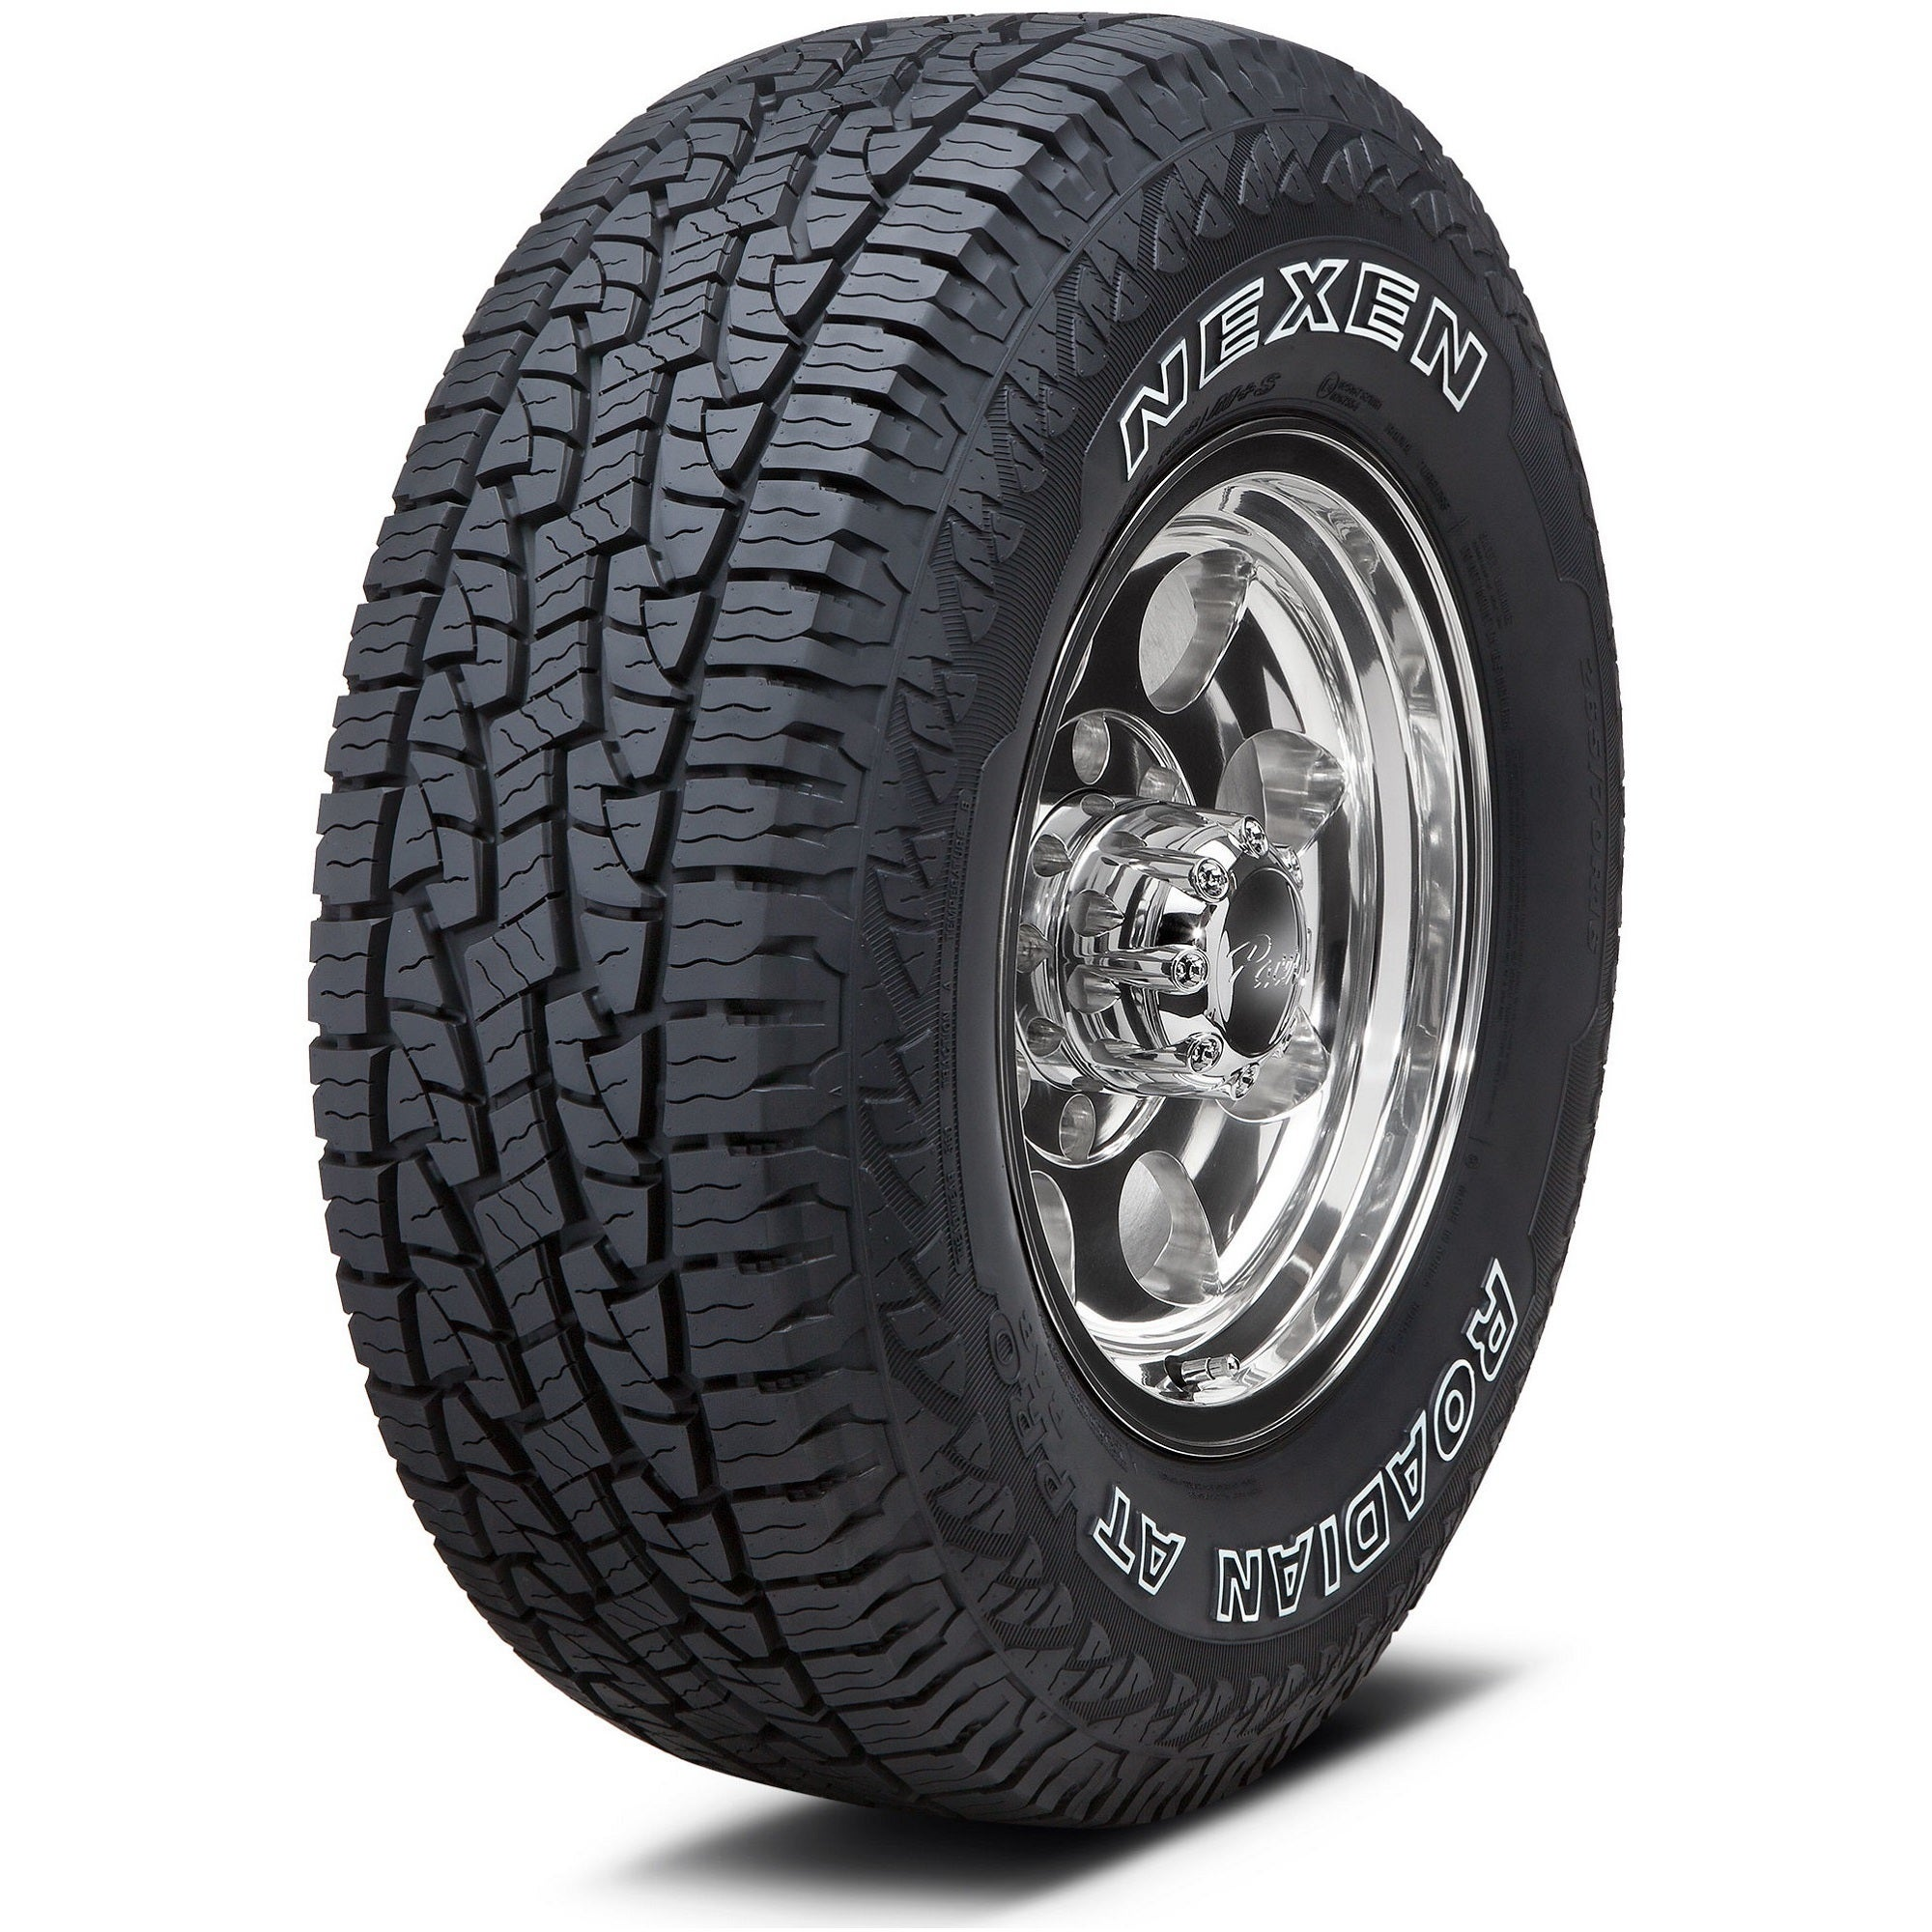 Nexen Roadian AT Pro RA8 All Terrain Tire - LT235/80R17 L...